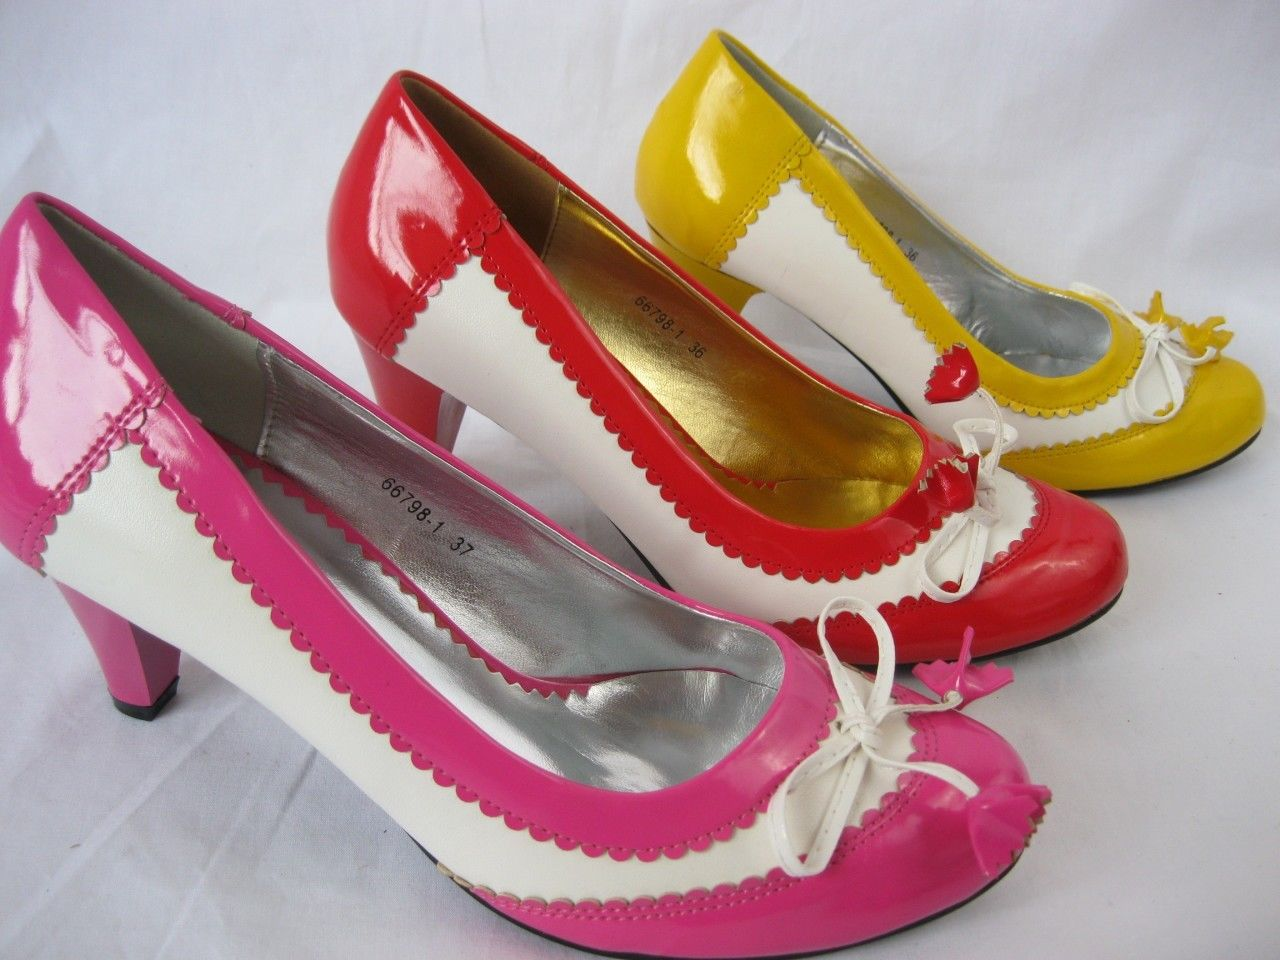 Yellow / Red / Pink Patent Bow Cute Shoe 3 4 5 6 7 8 Kitch Fun Tassle Design